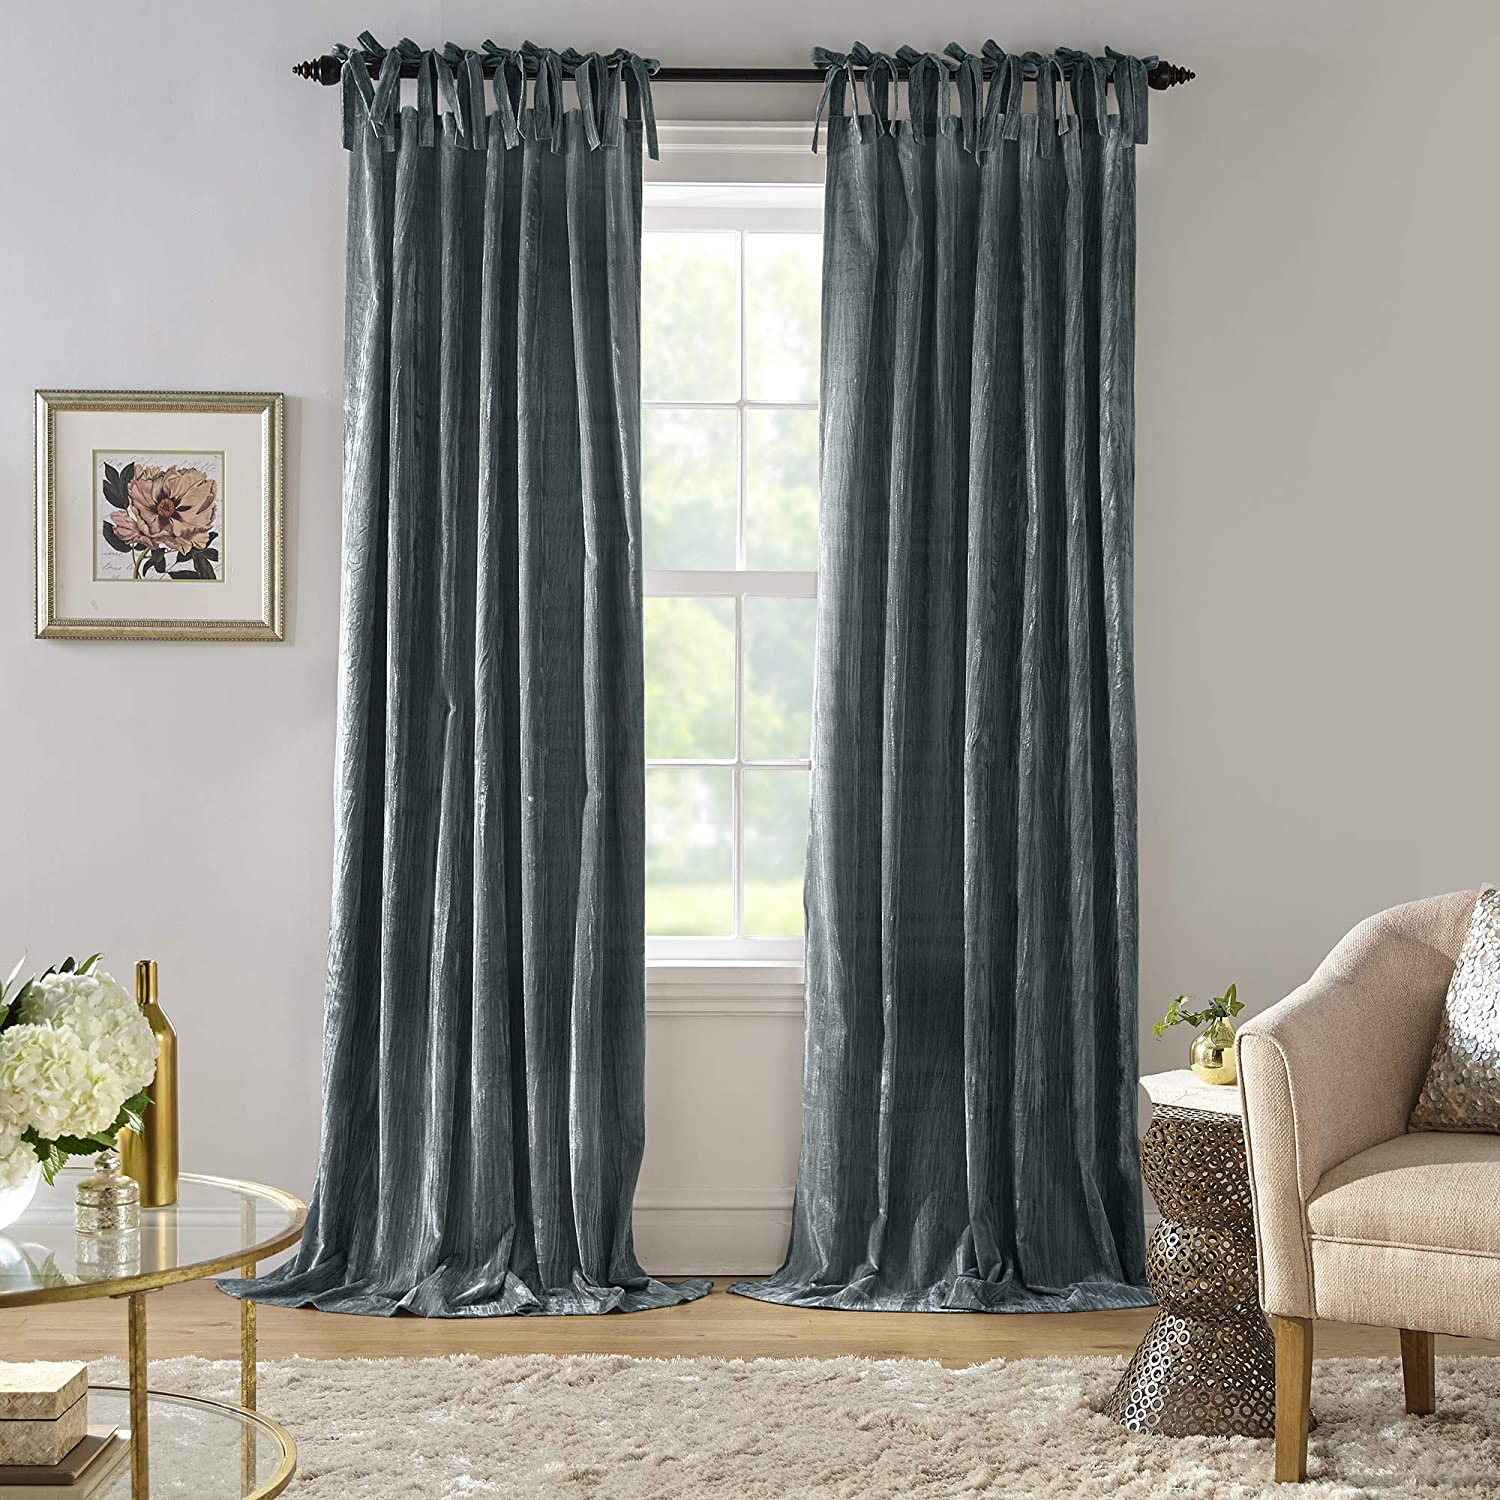 "Elrene Home Fashions Korena Tie-Top Crushed Velvet Window Curtain Panel, 52"" x 84"" (1, Peacock"